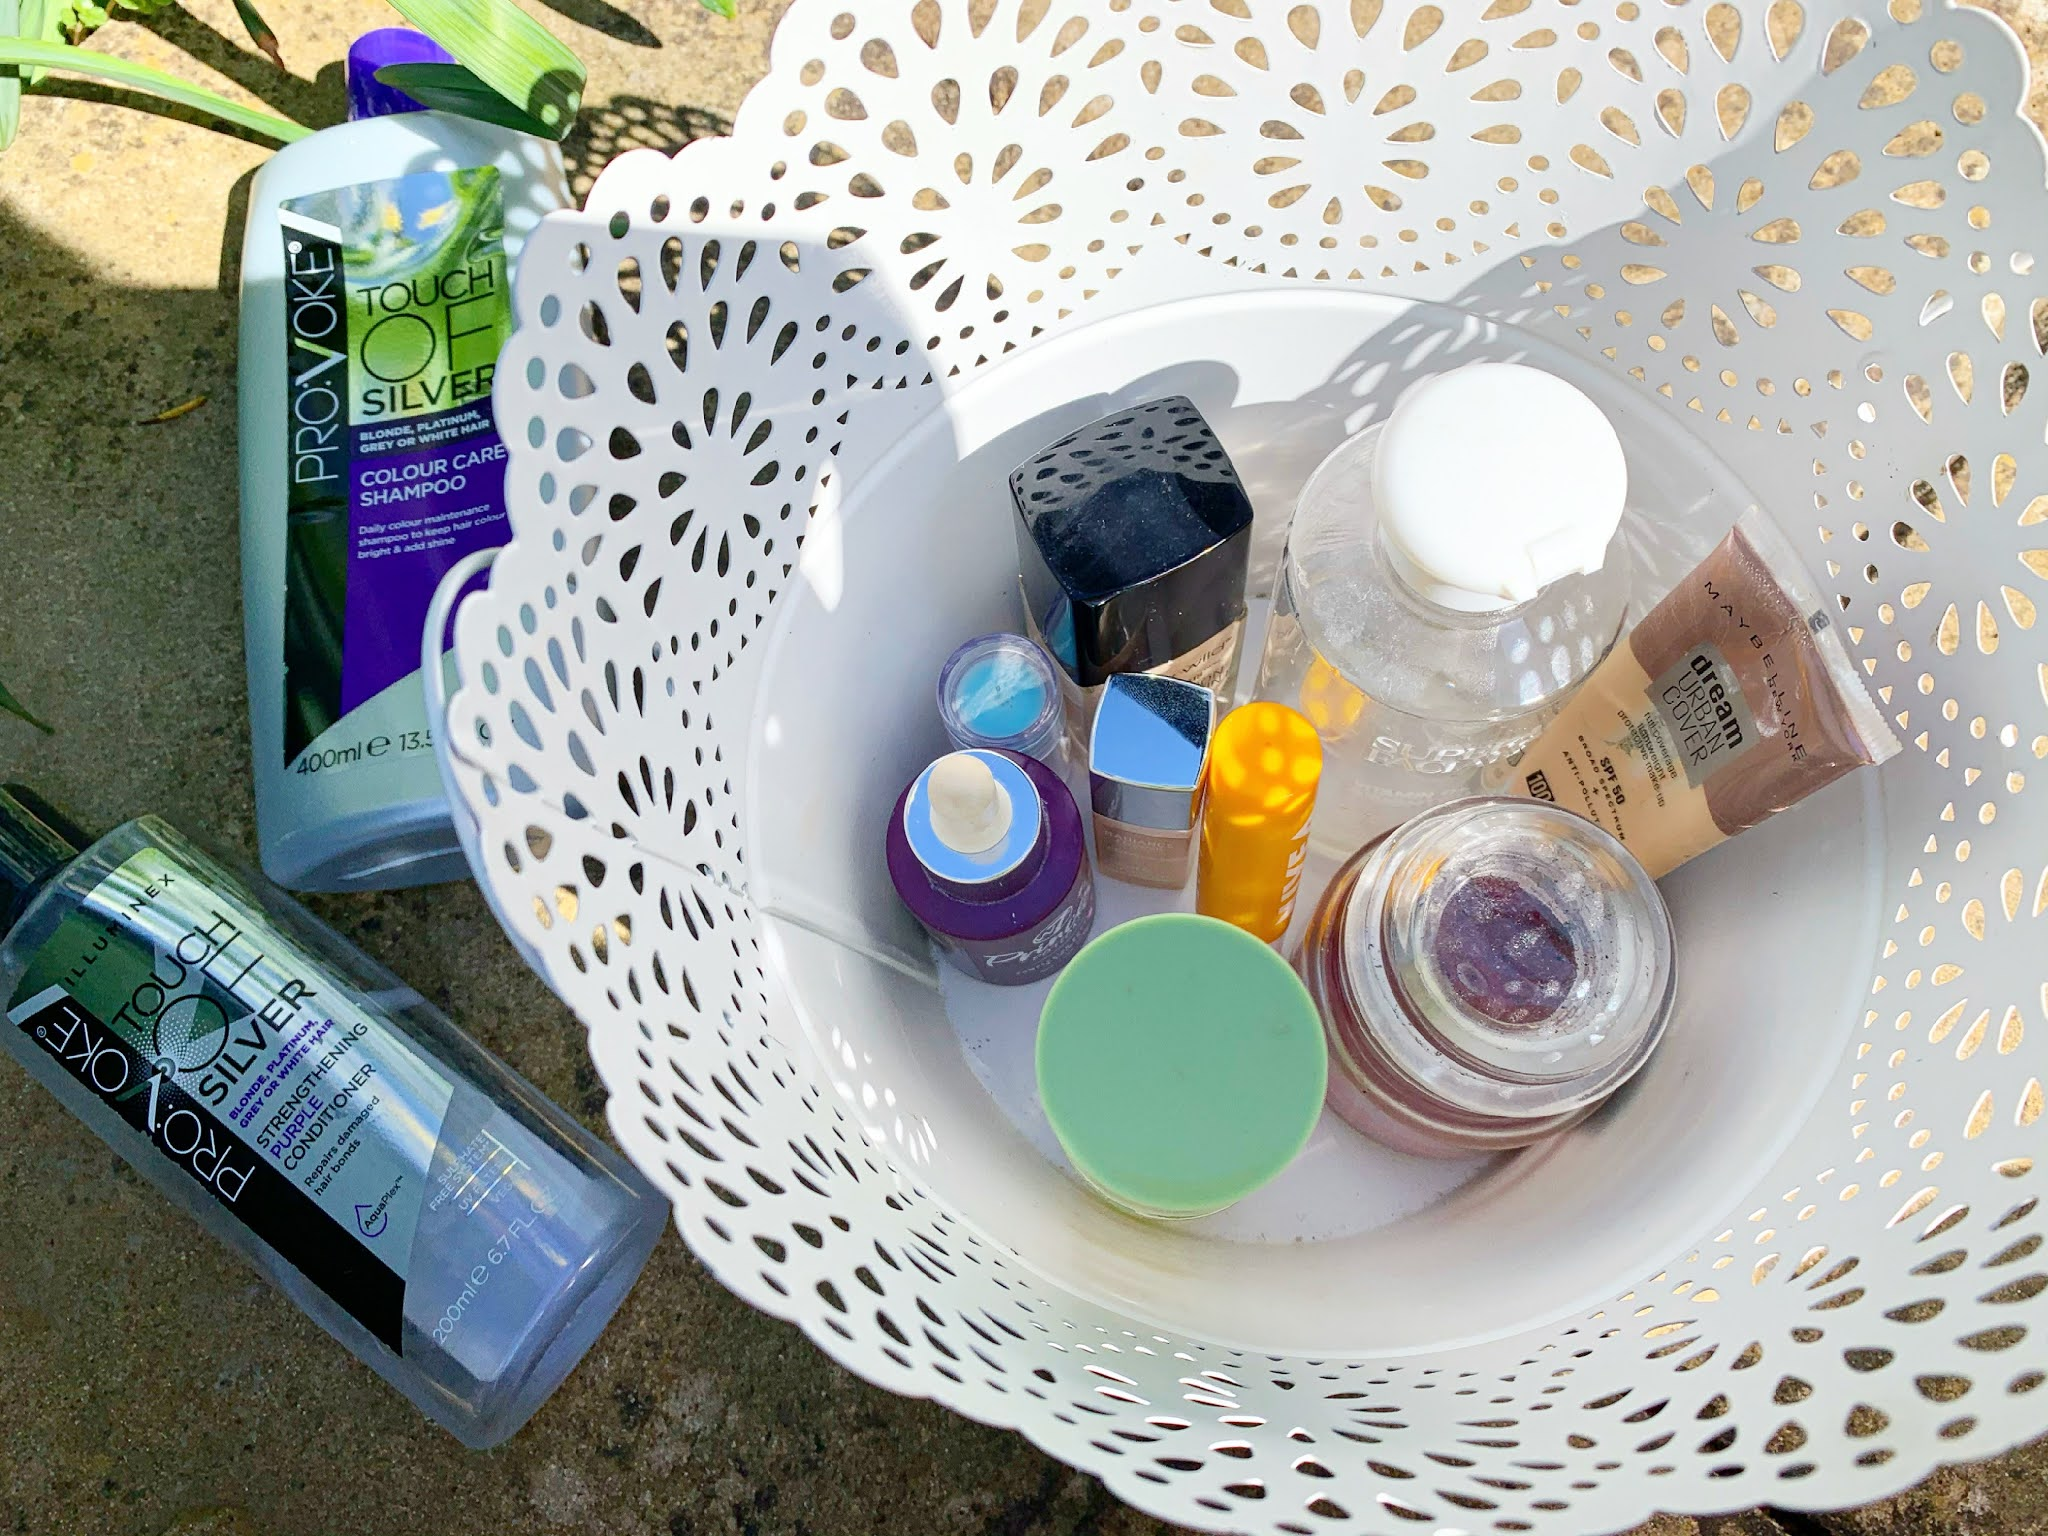 Empty makeup and skincare products in a tub